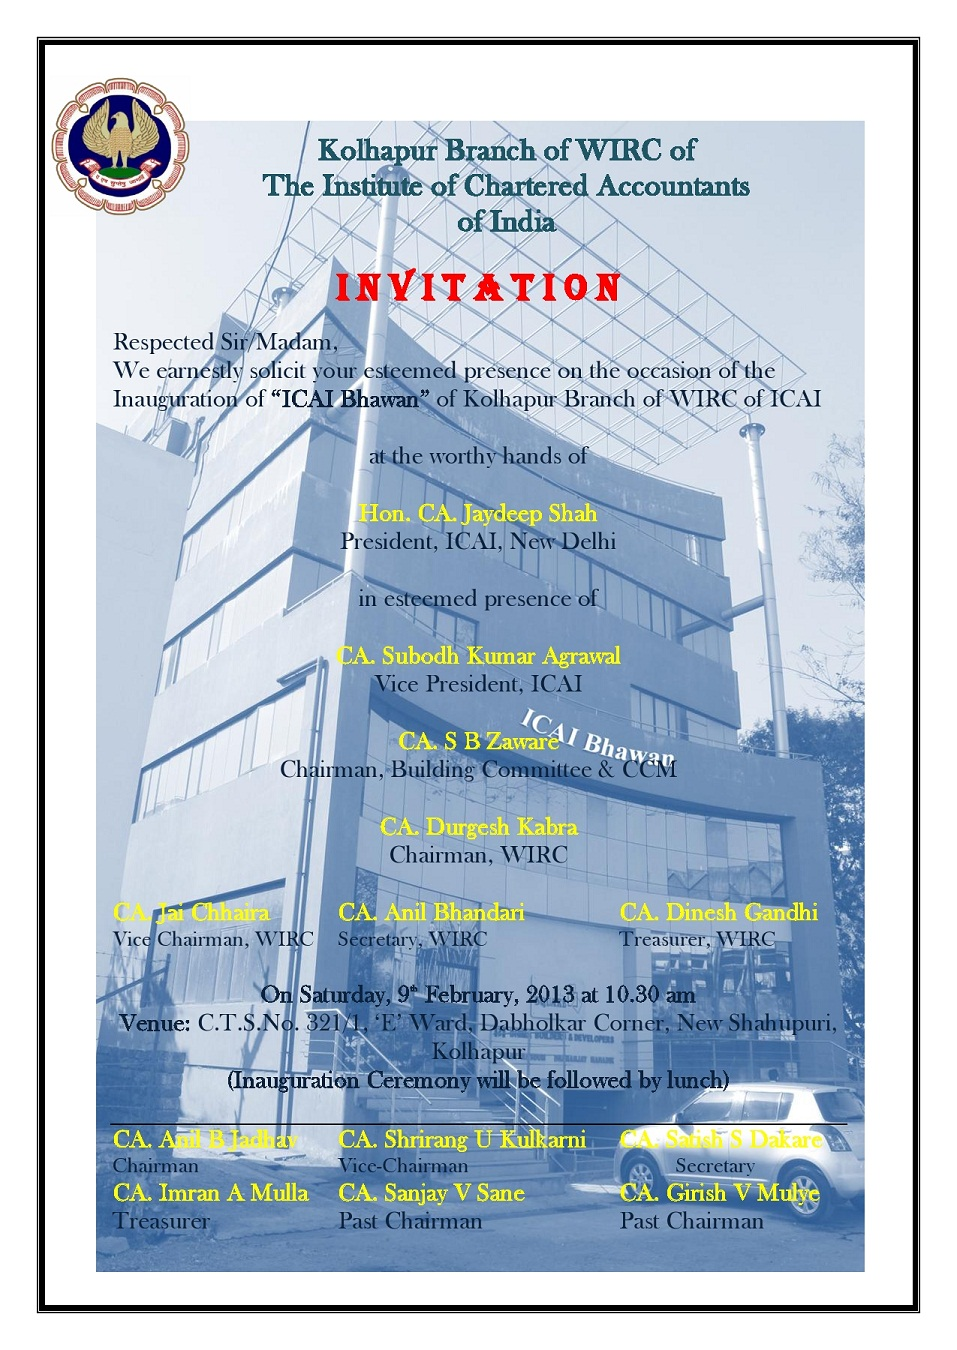 Kolhapur Branch Of Wirc Of Icai Invitation Of Inauguration Of